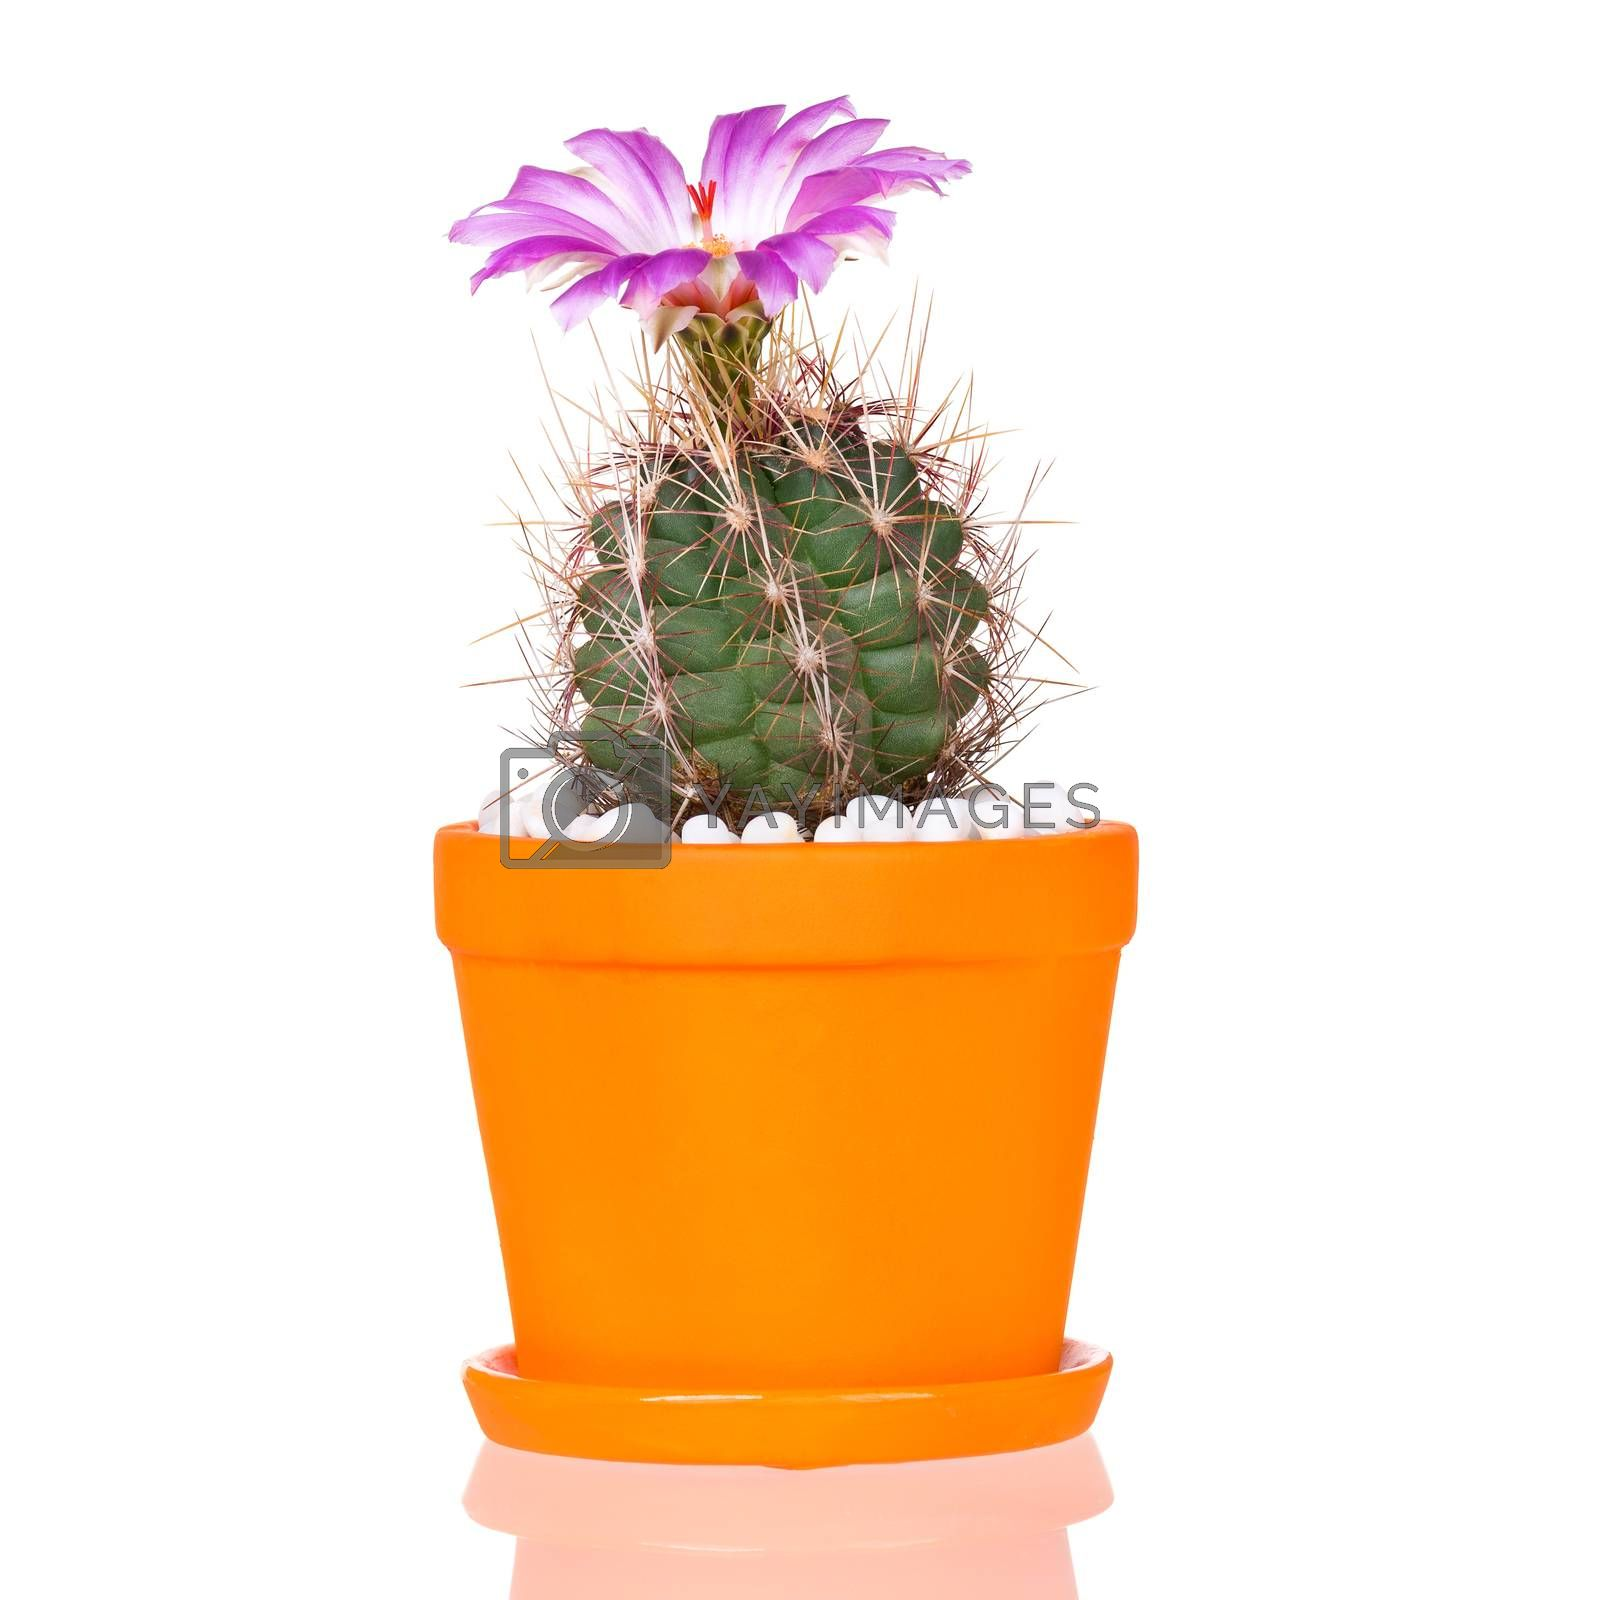 Beautiful Cactus Flowers in orange Flower Pot Blooming isolated on White Background.